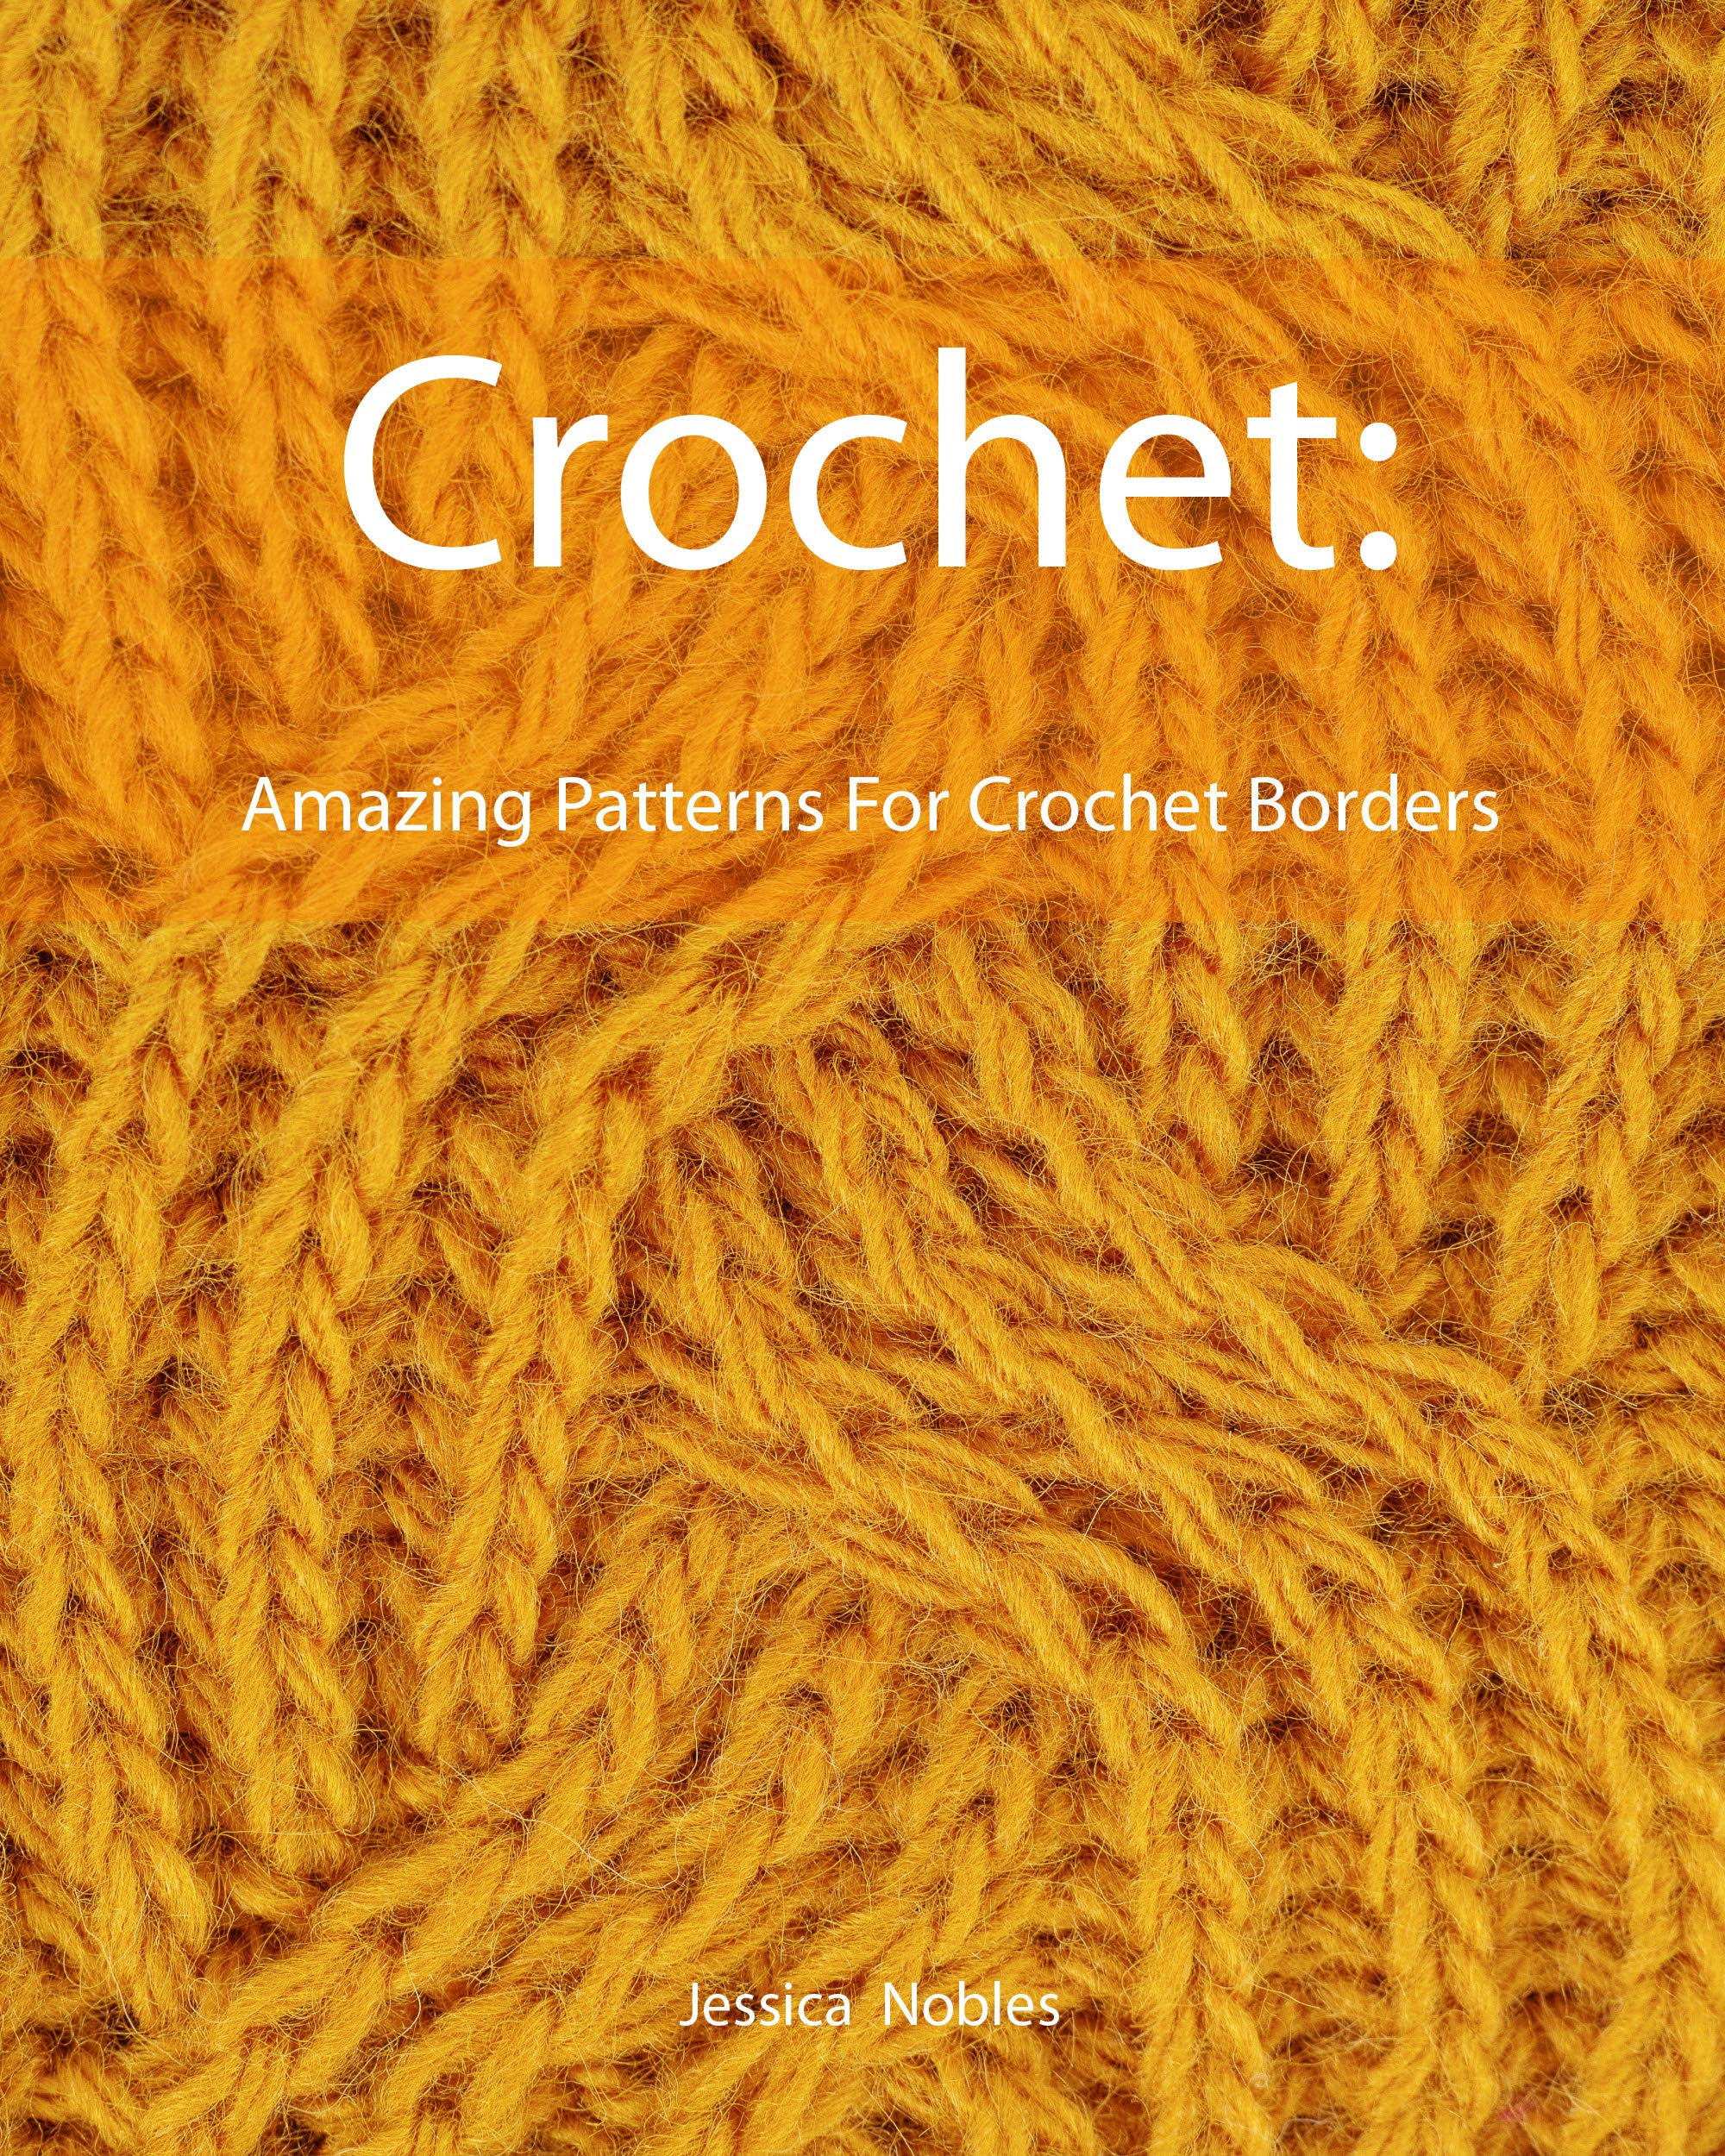 Crochet  Amazing Patterns For Crochet Borders  English Edition